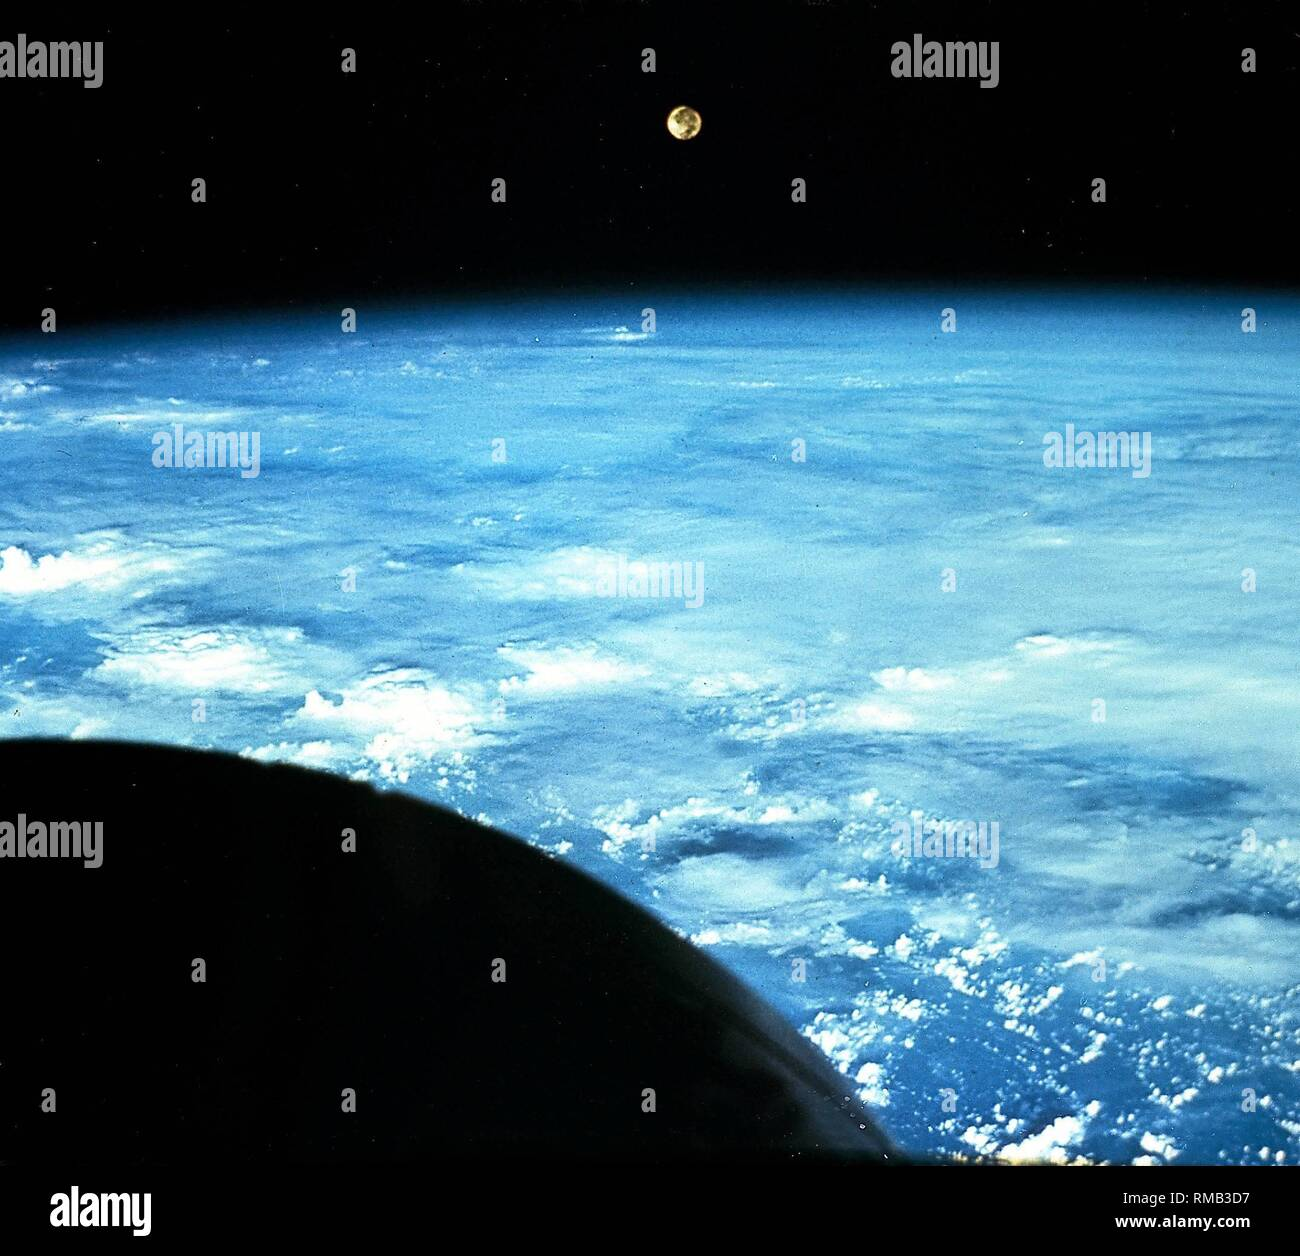 Moonrise over the curved Earth's horizon taken from the Gemini spacecraft. The Gemini program was the precursor of the Apollo program of the American aerospace company carried out between 1964 and 1966. Undated photo, probably from the 1980s. - Stock Image